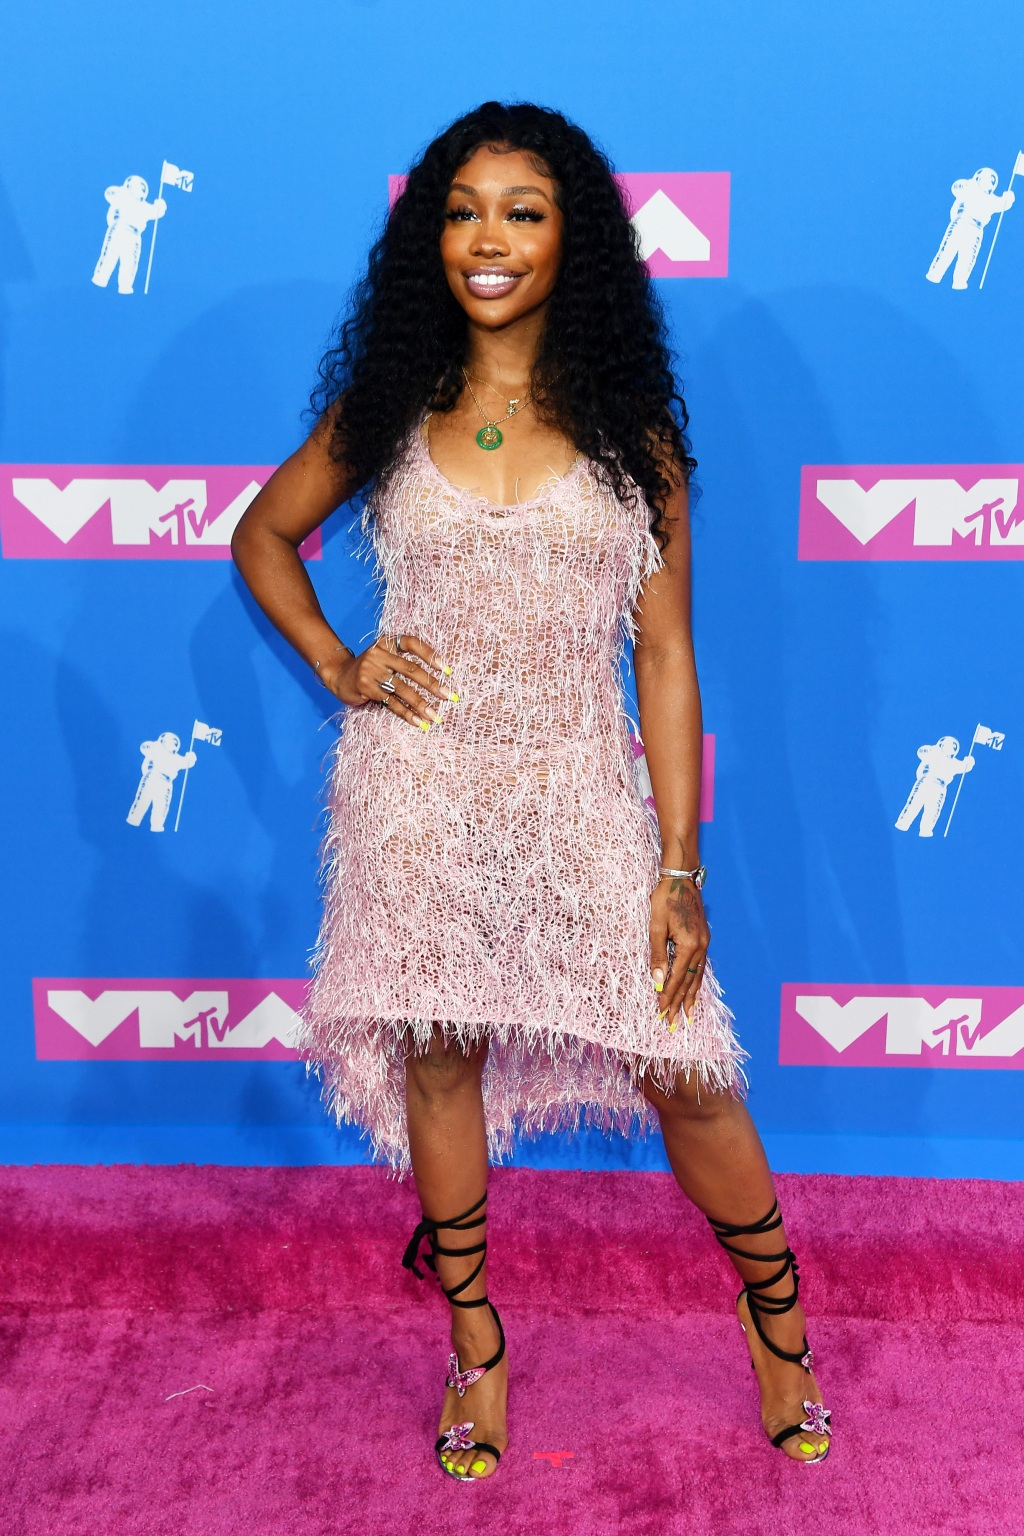 SZA attends the 2018 MTV Video Music Awards at Radio City Music Hall on August 20, 2018 in New York City. (Photo by Nicholas Hunt/Getty Images for MTV)